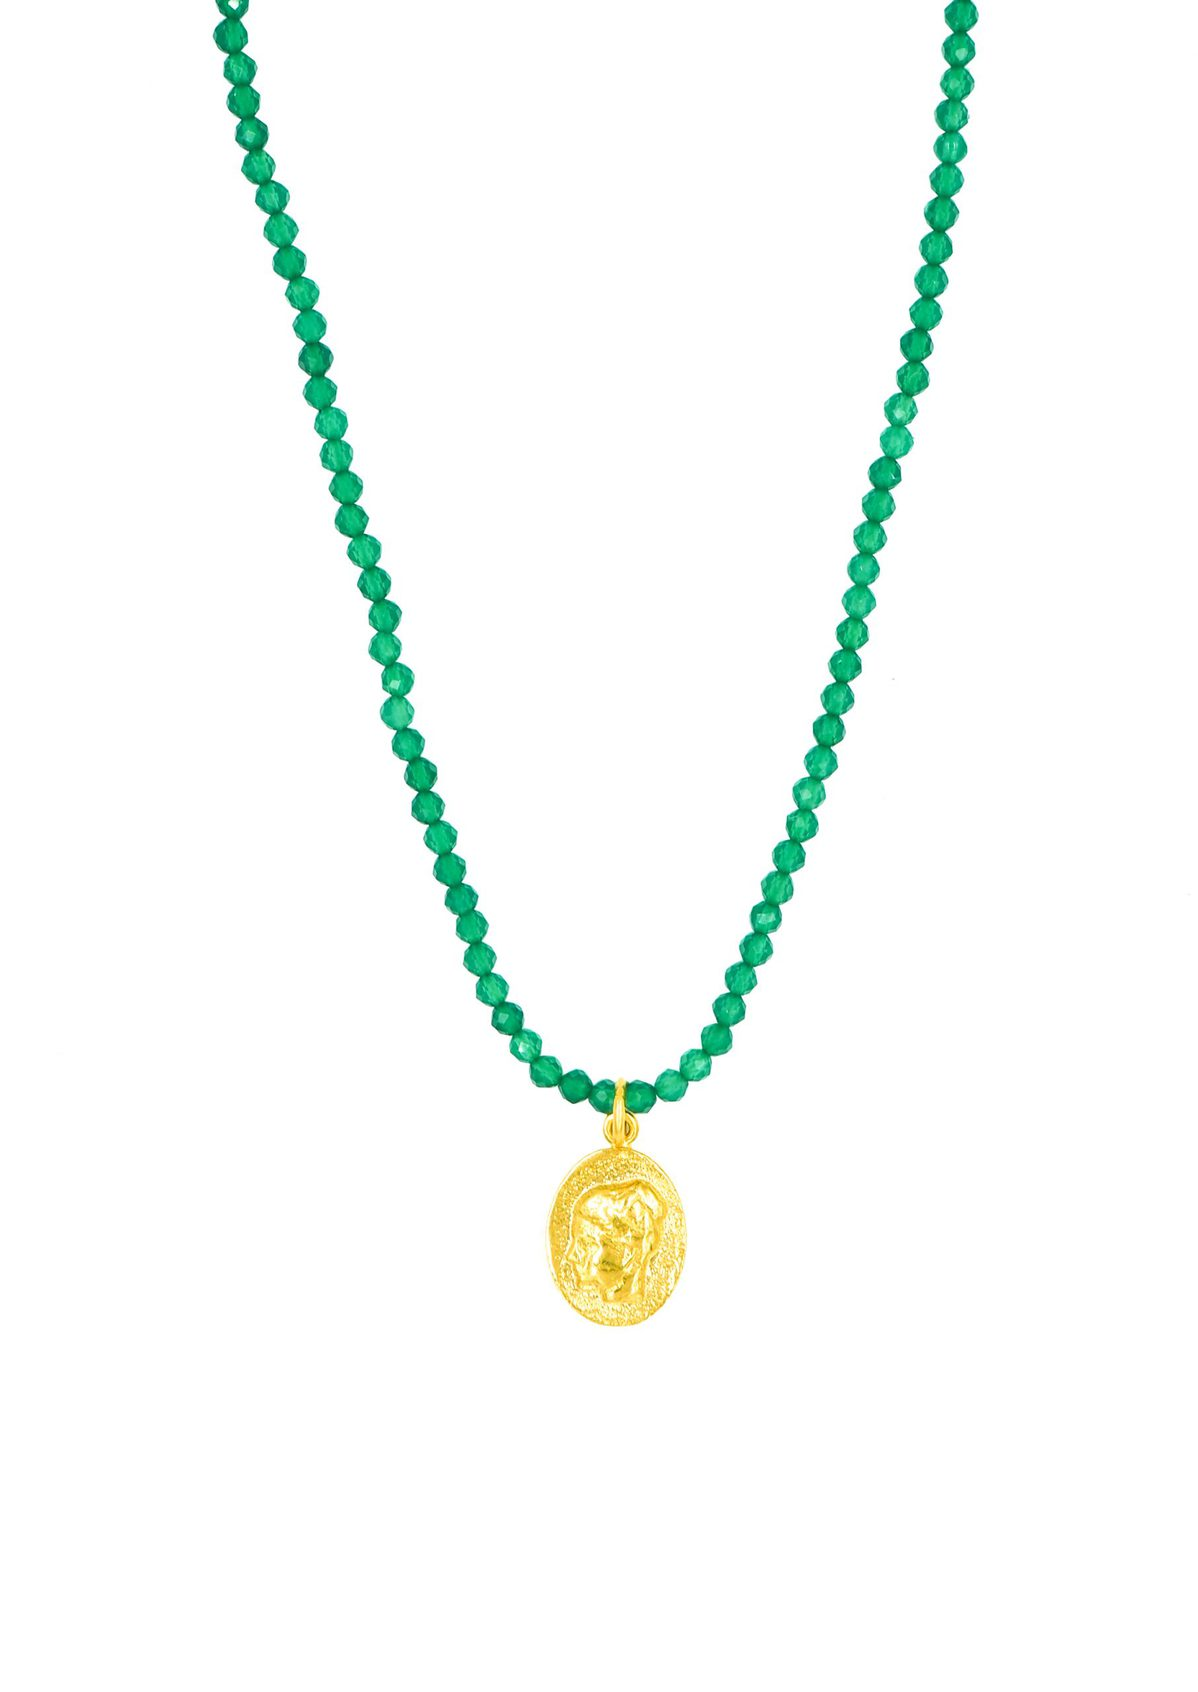 YGEIA EMERALD NECKLACE